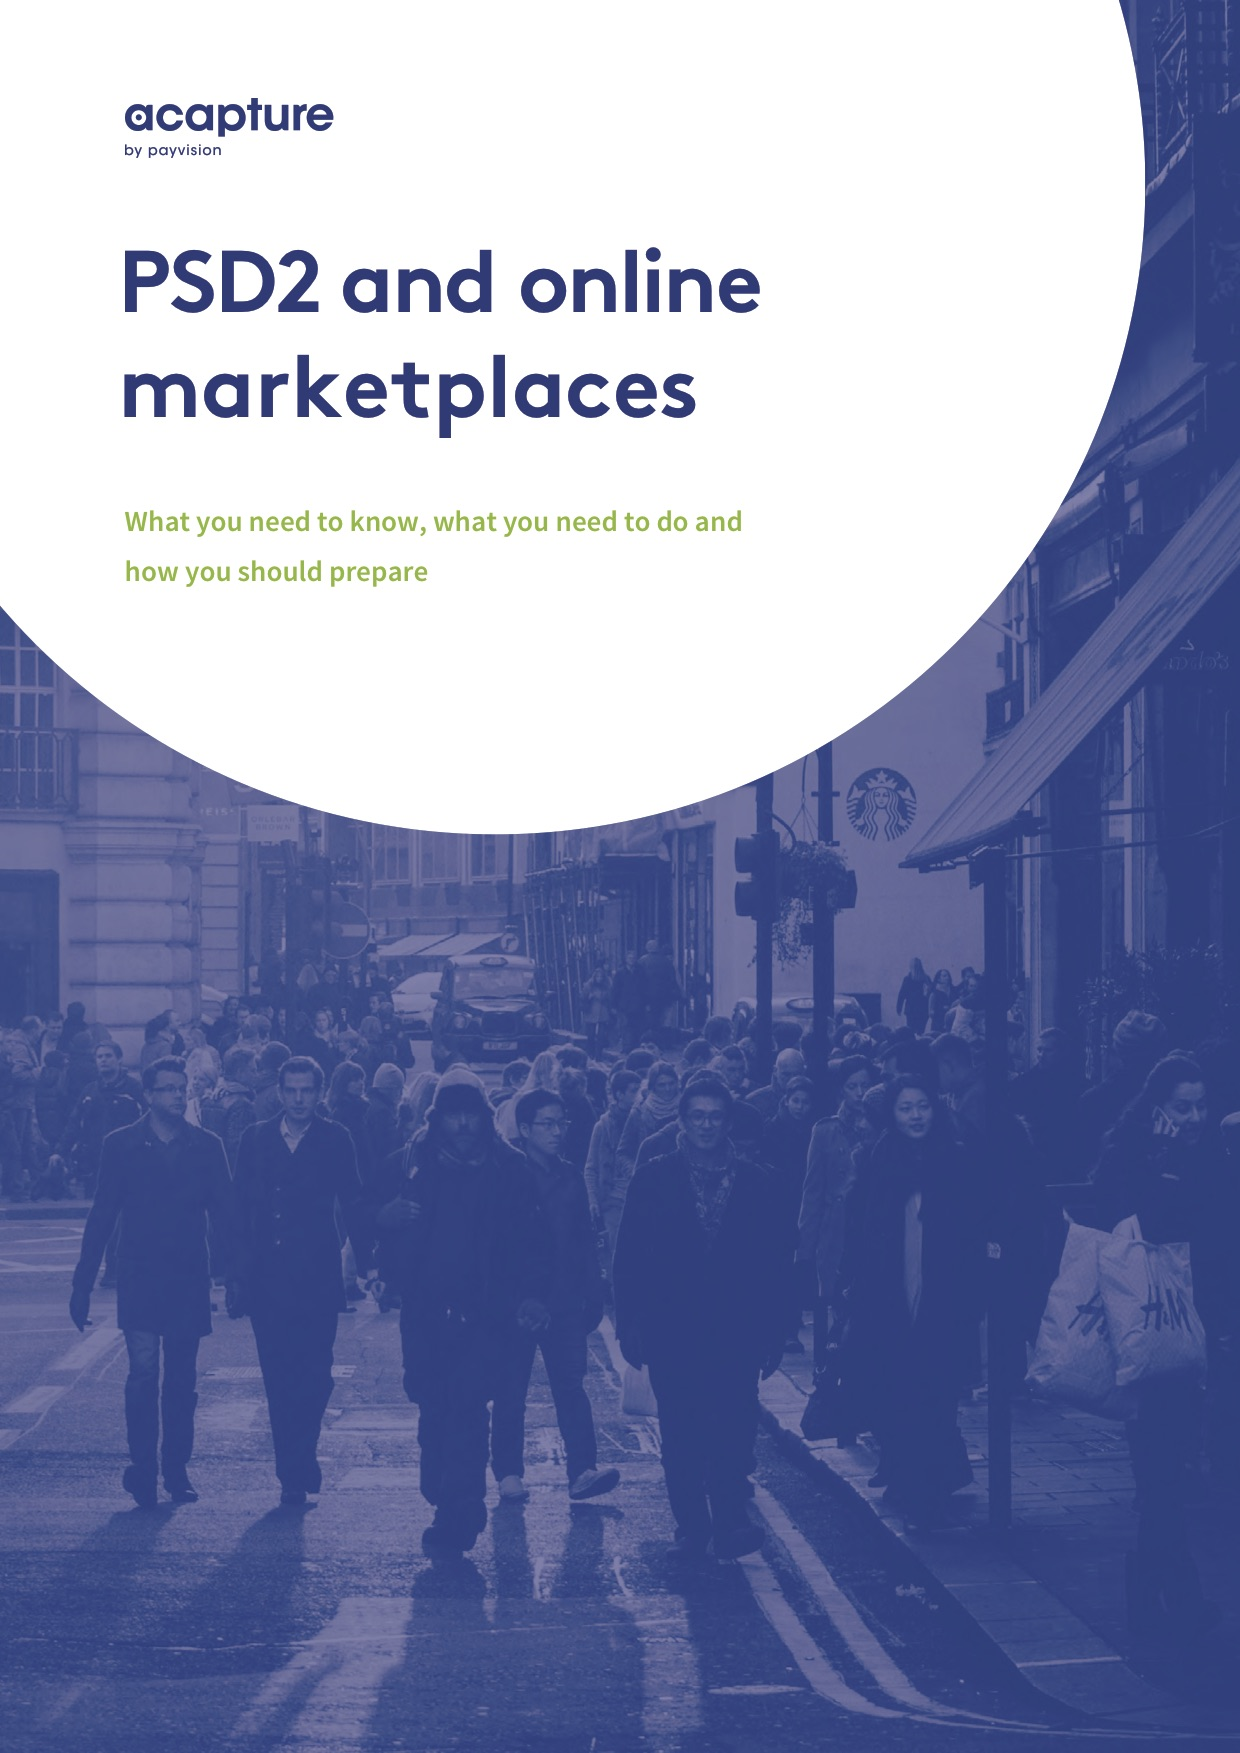 PSD2-and-online-marketplaces-FP.jpg